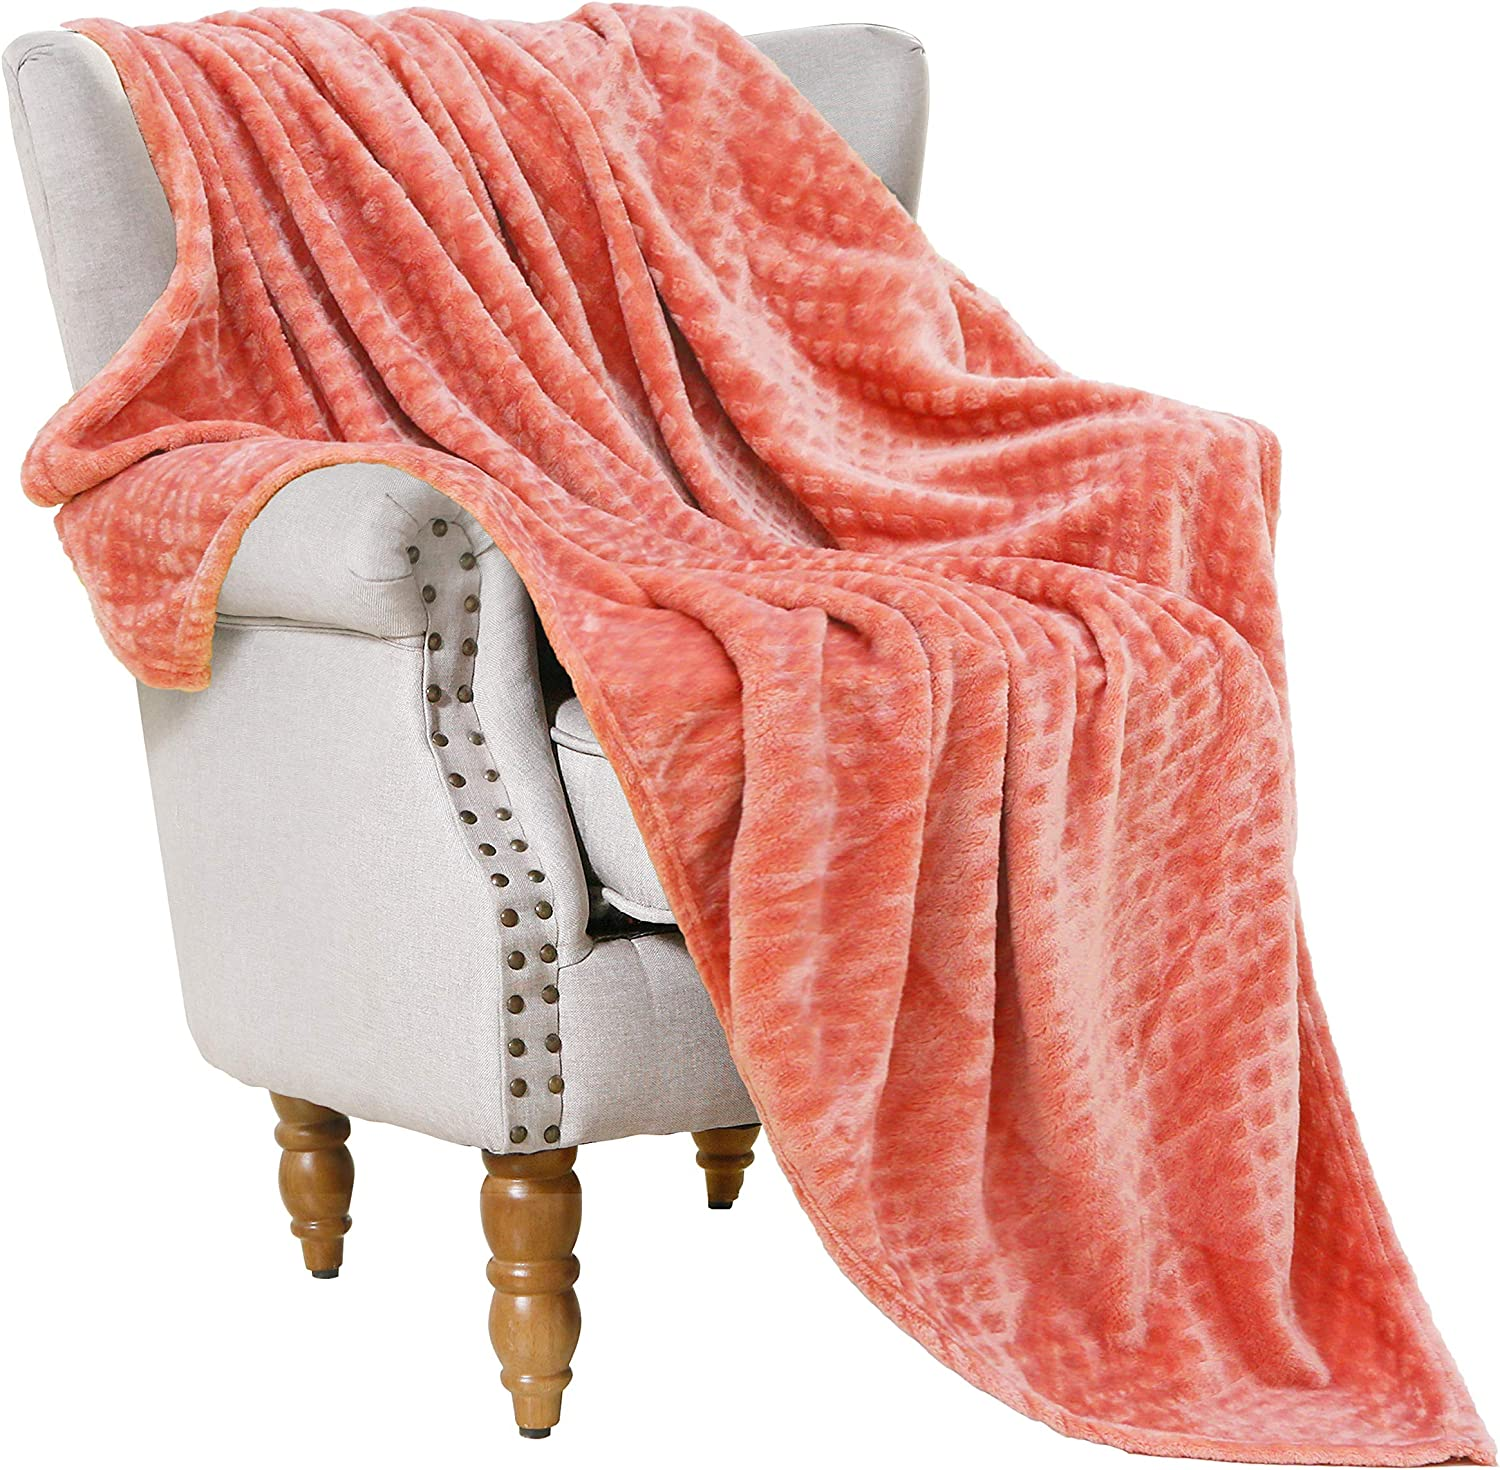 "Flannel Fleece Throw Blankets (Coral, 50"" x 70"")-Soft, Warm and Lightweight"